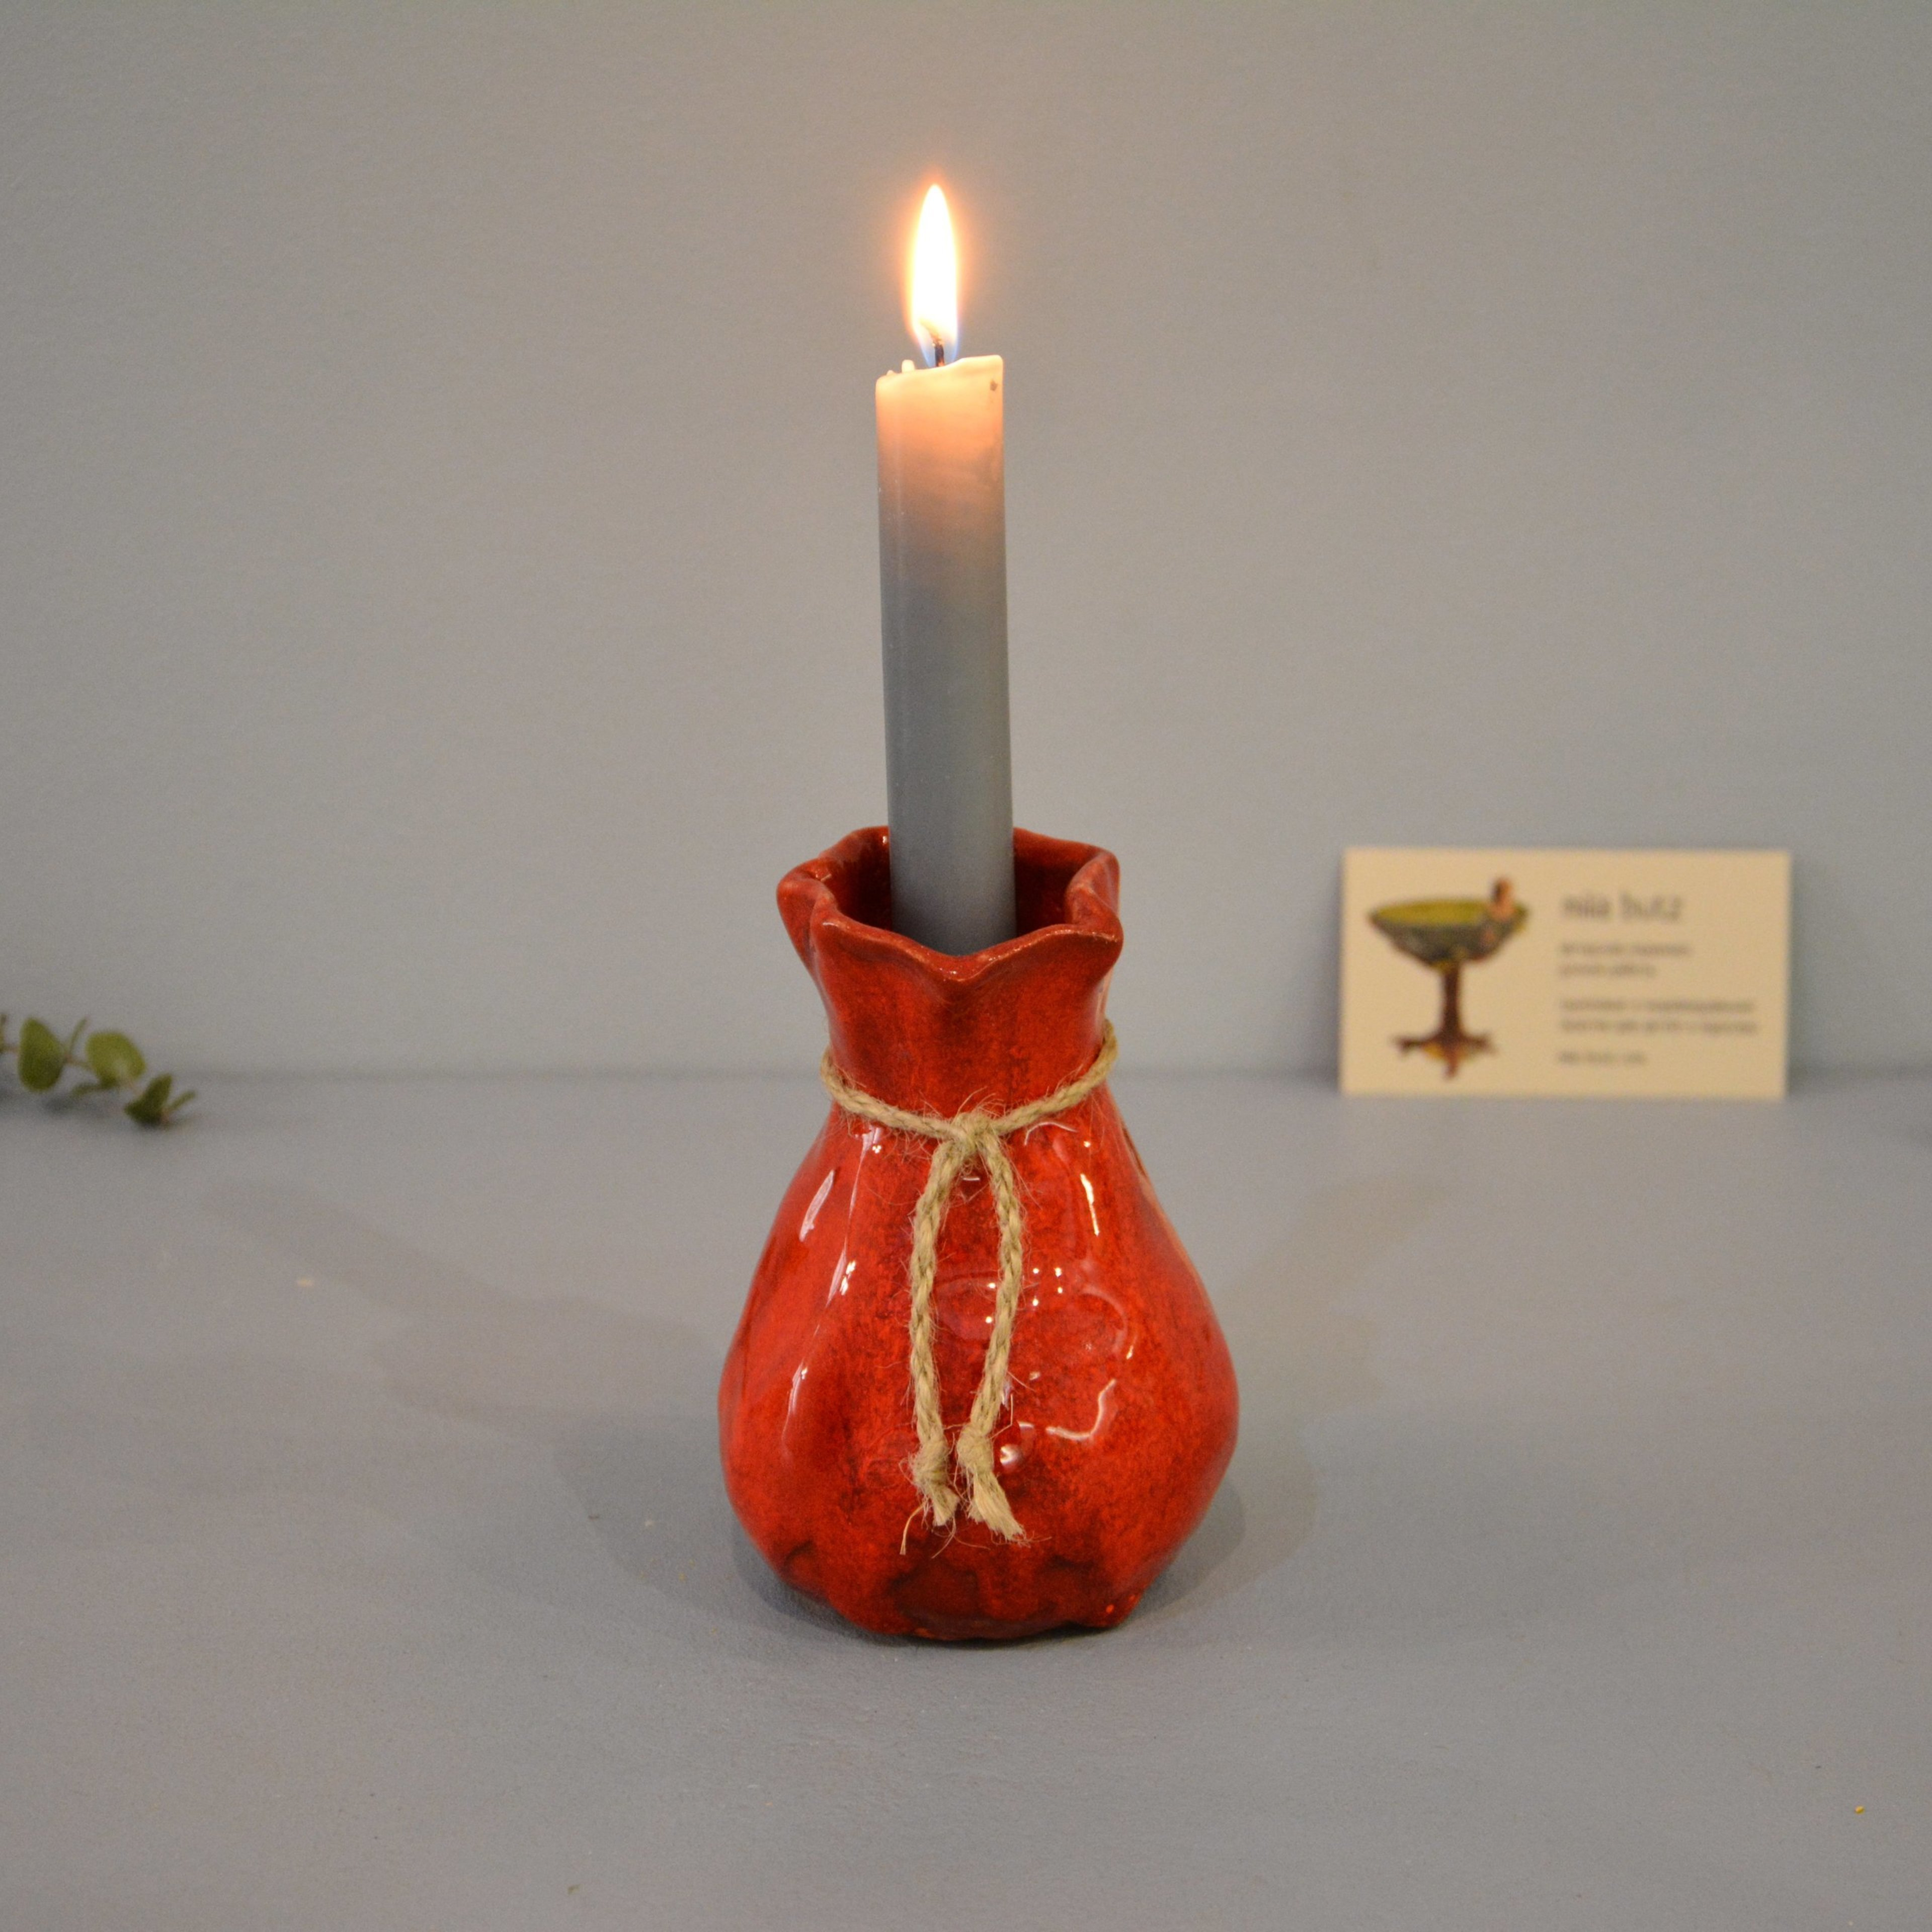 Candle vase «Red Bagful», height - 12 cm, color - red. Photo 1422-3840-3840.